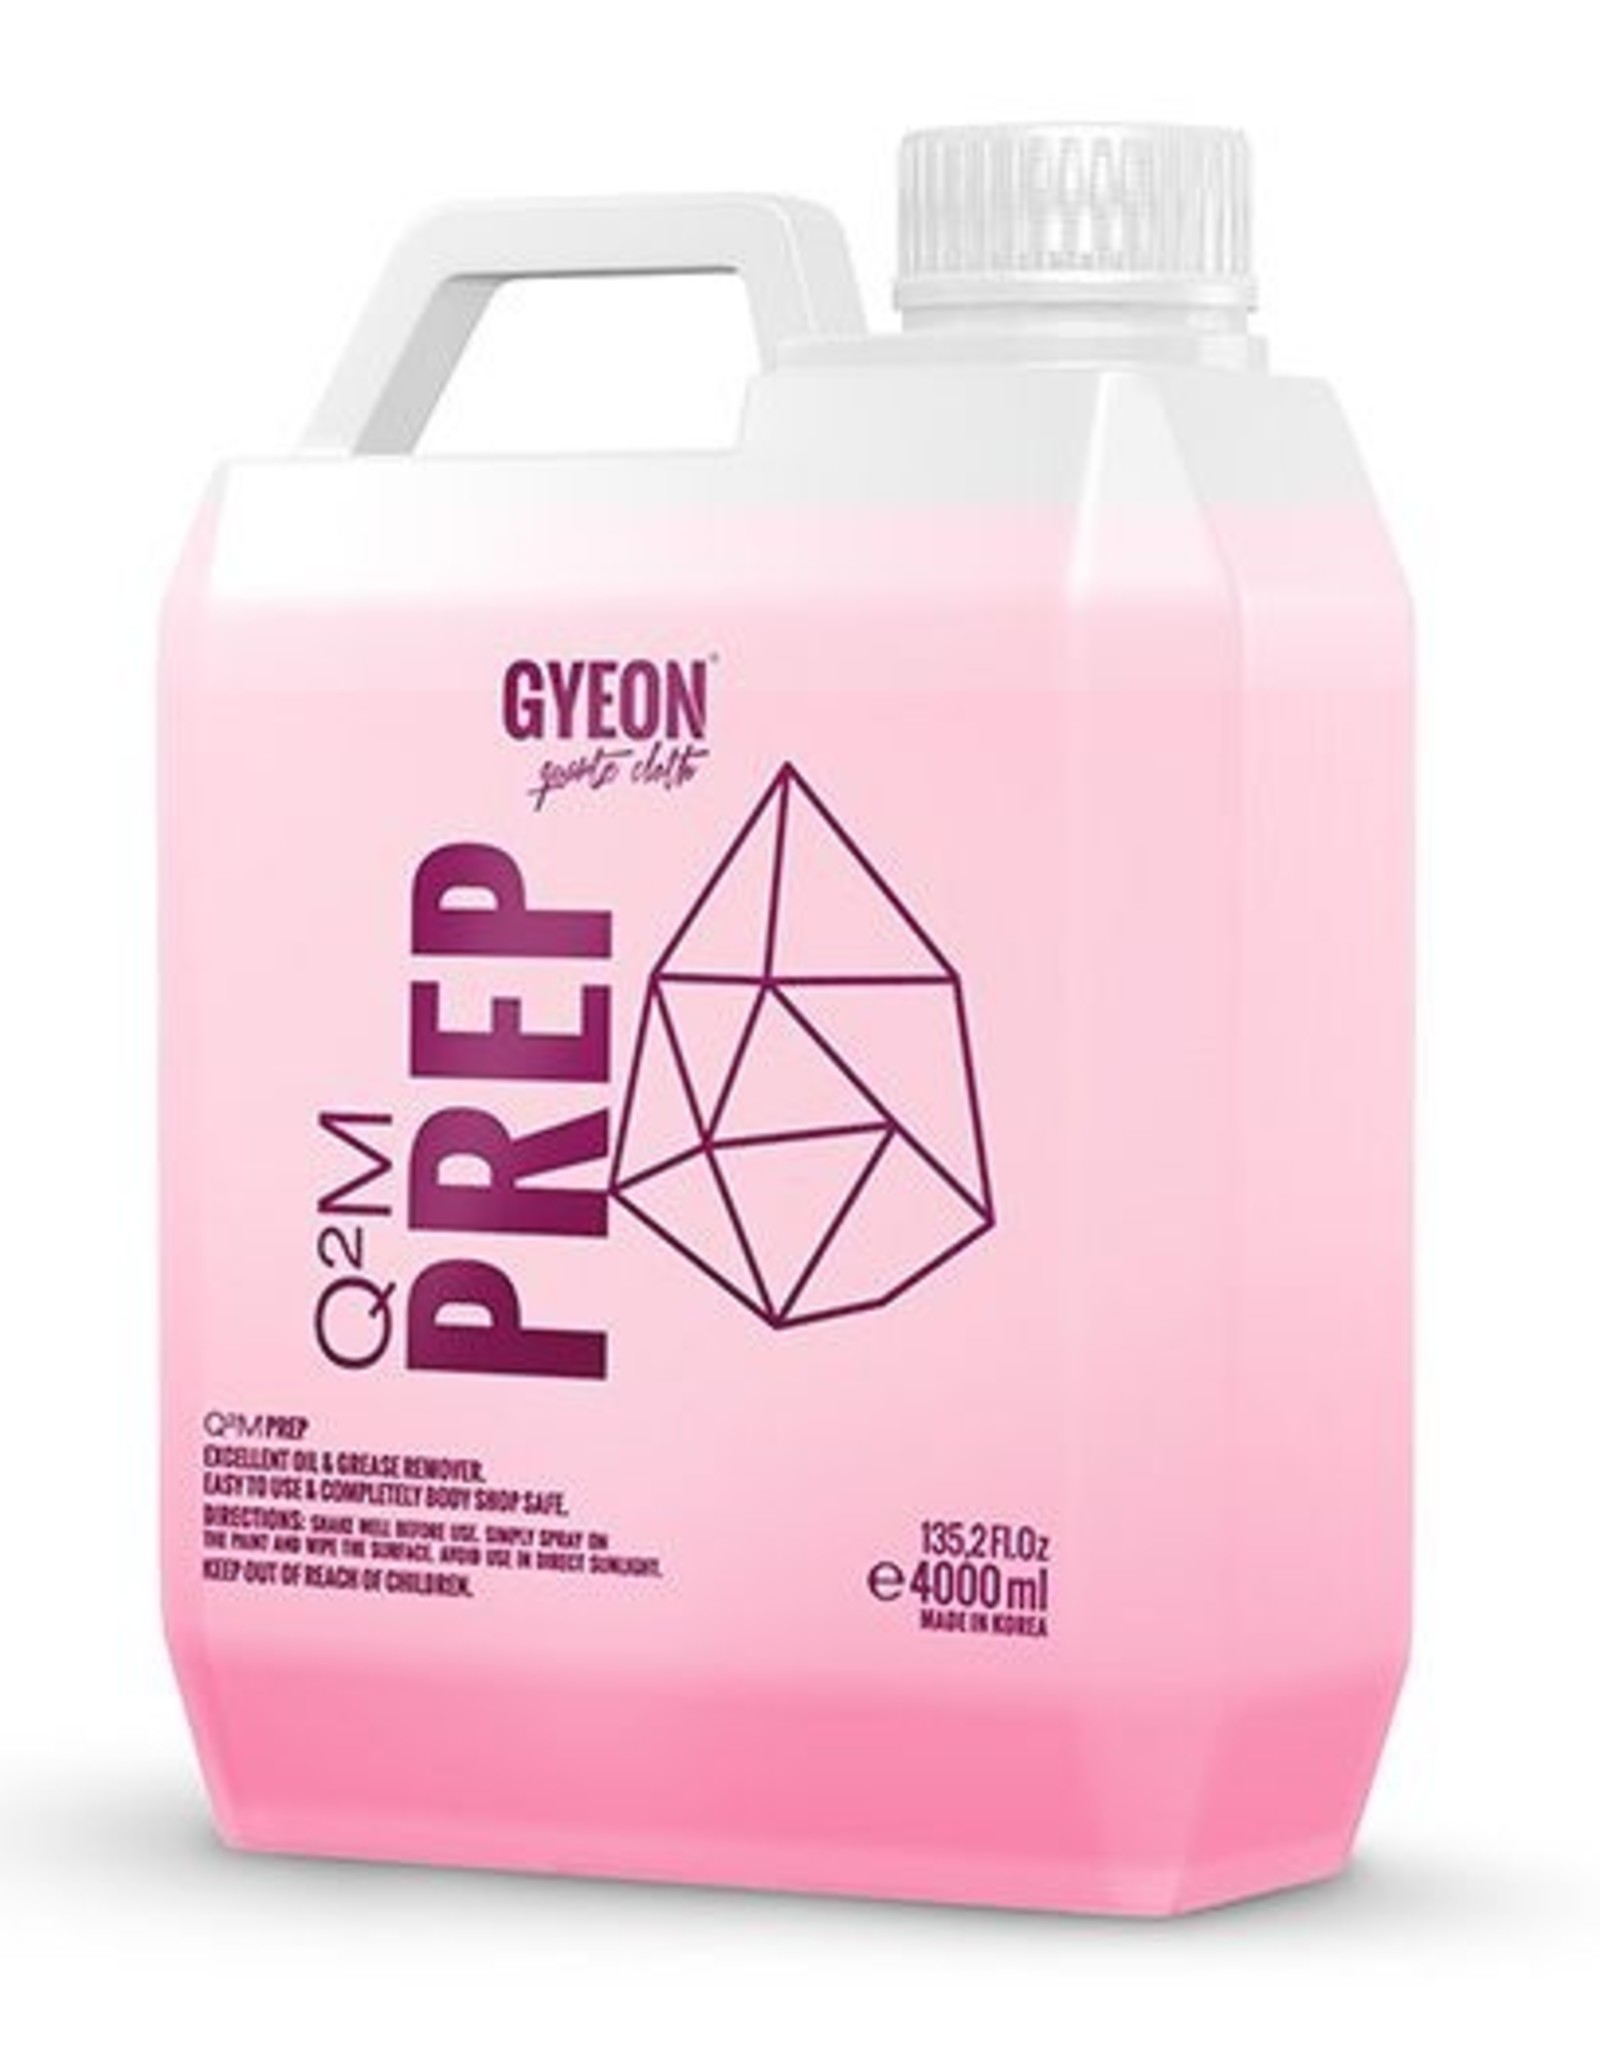 Gyeon Q²M Prep 4000ml